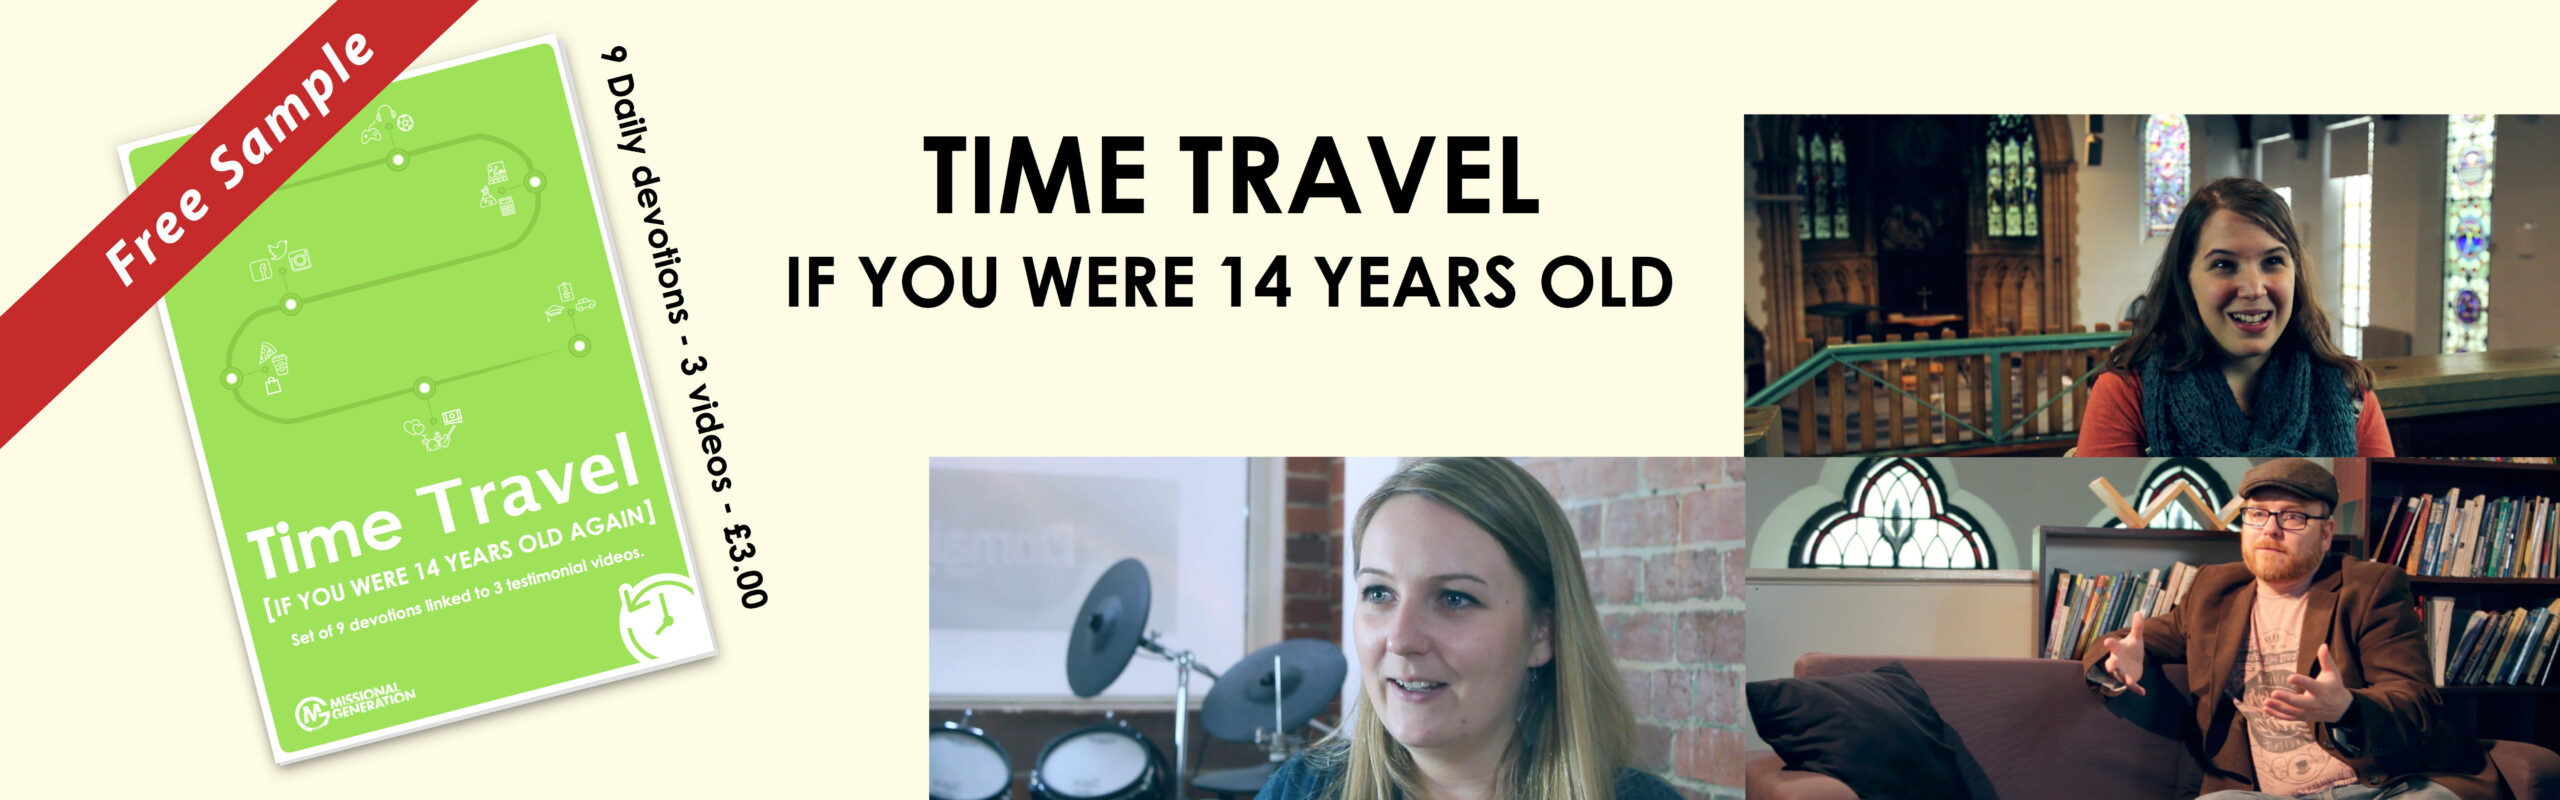 Time Travel: If you were 14 years old